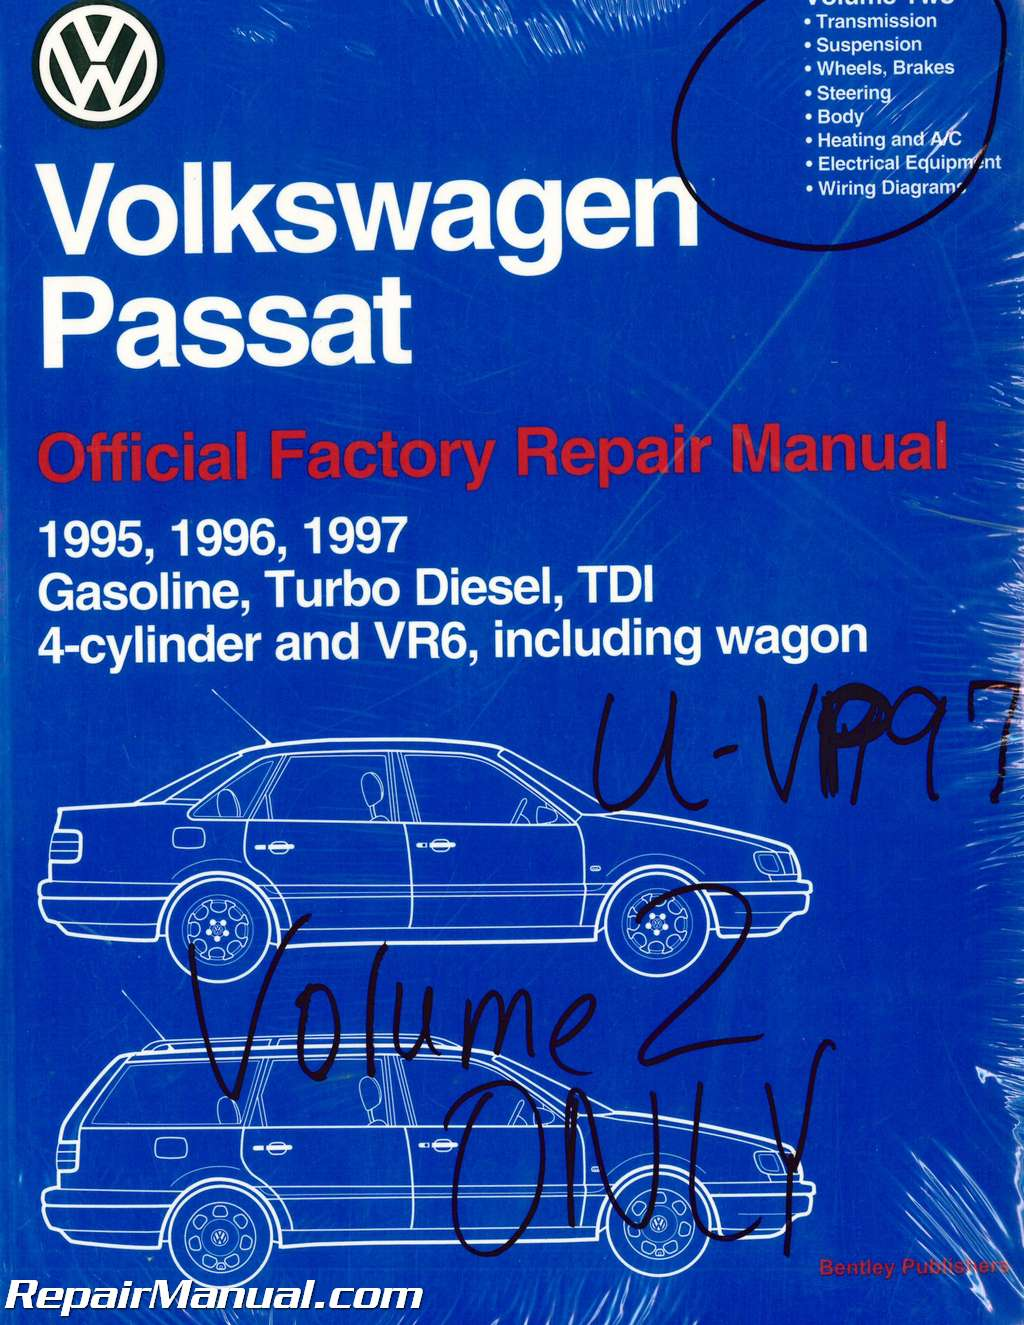 Volume 2 ONLY Volkswagen Passat (B4) Repair Manual 1995 1996 1997 Gasoline  Turbo Diesel TDI 4-cylinder VR6 Wagon